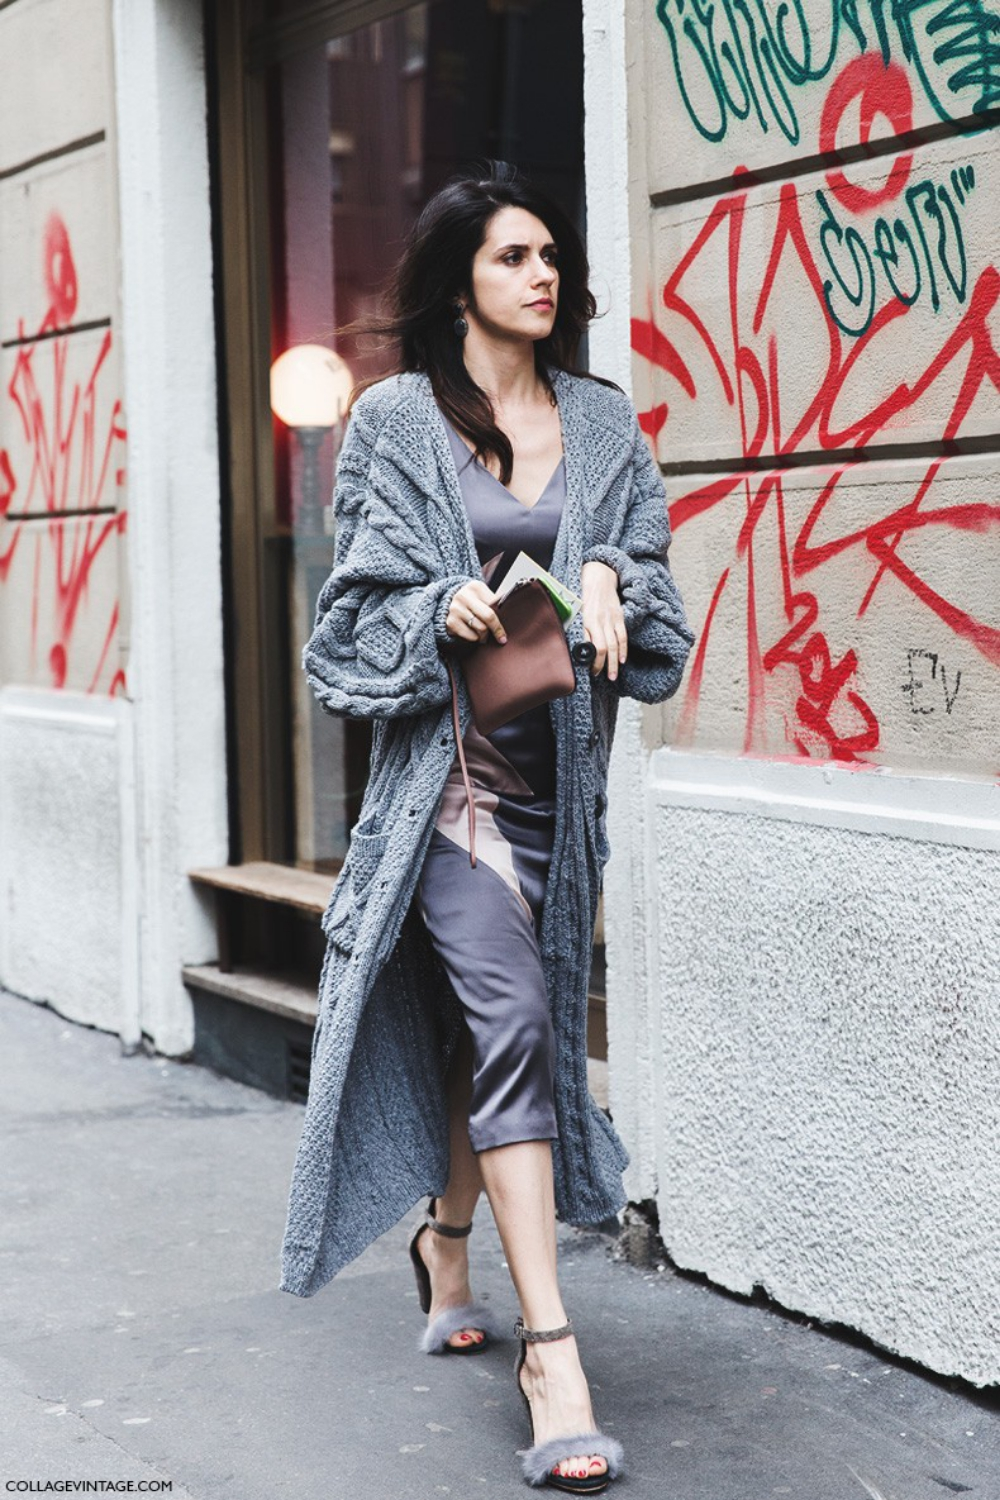 milan-fashion-week-fall-2015-street-style-collage-vintage-5.jpg